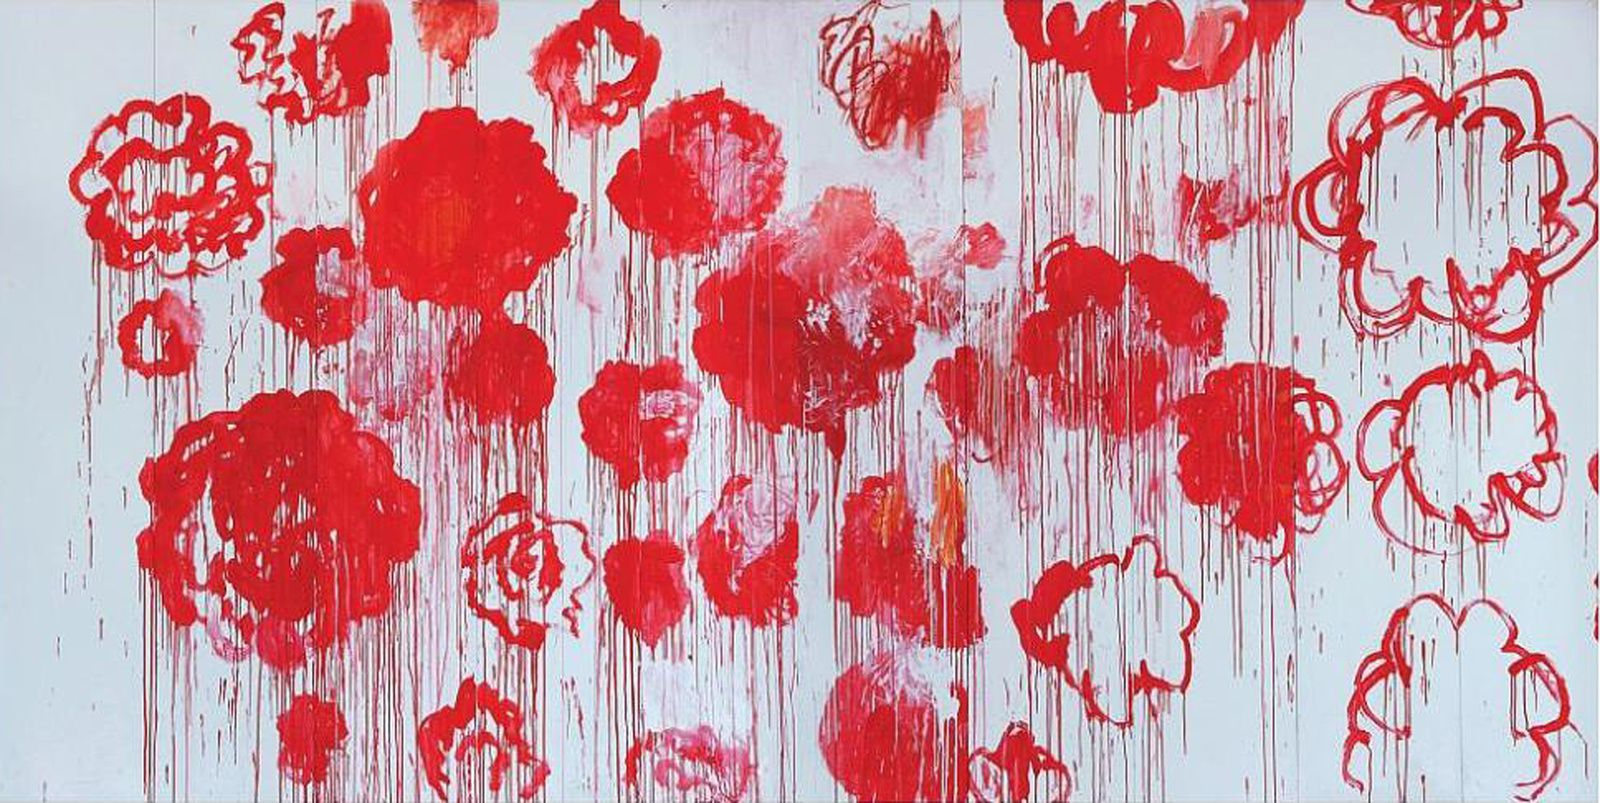 Cy TWOMBLY at Pompidou Center